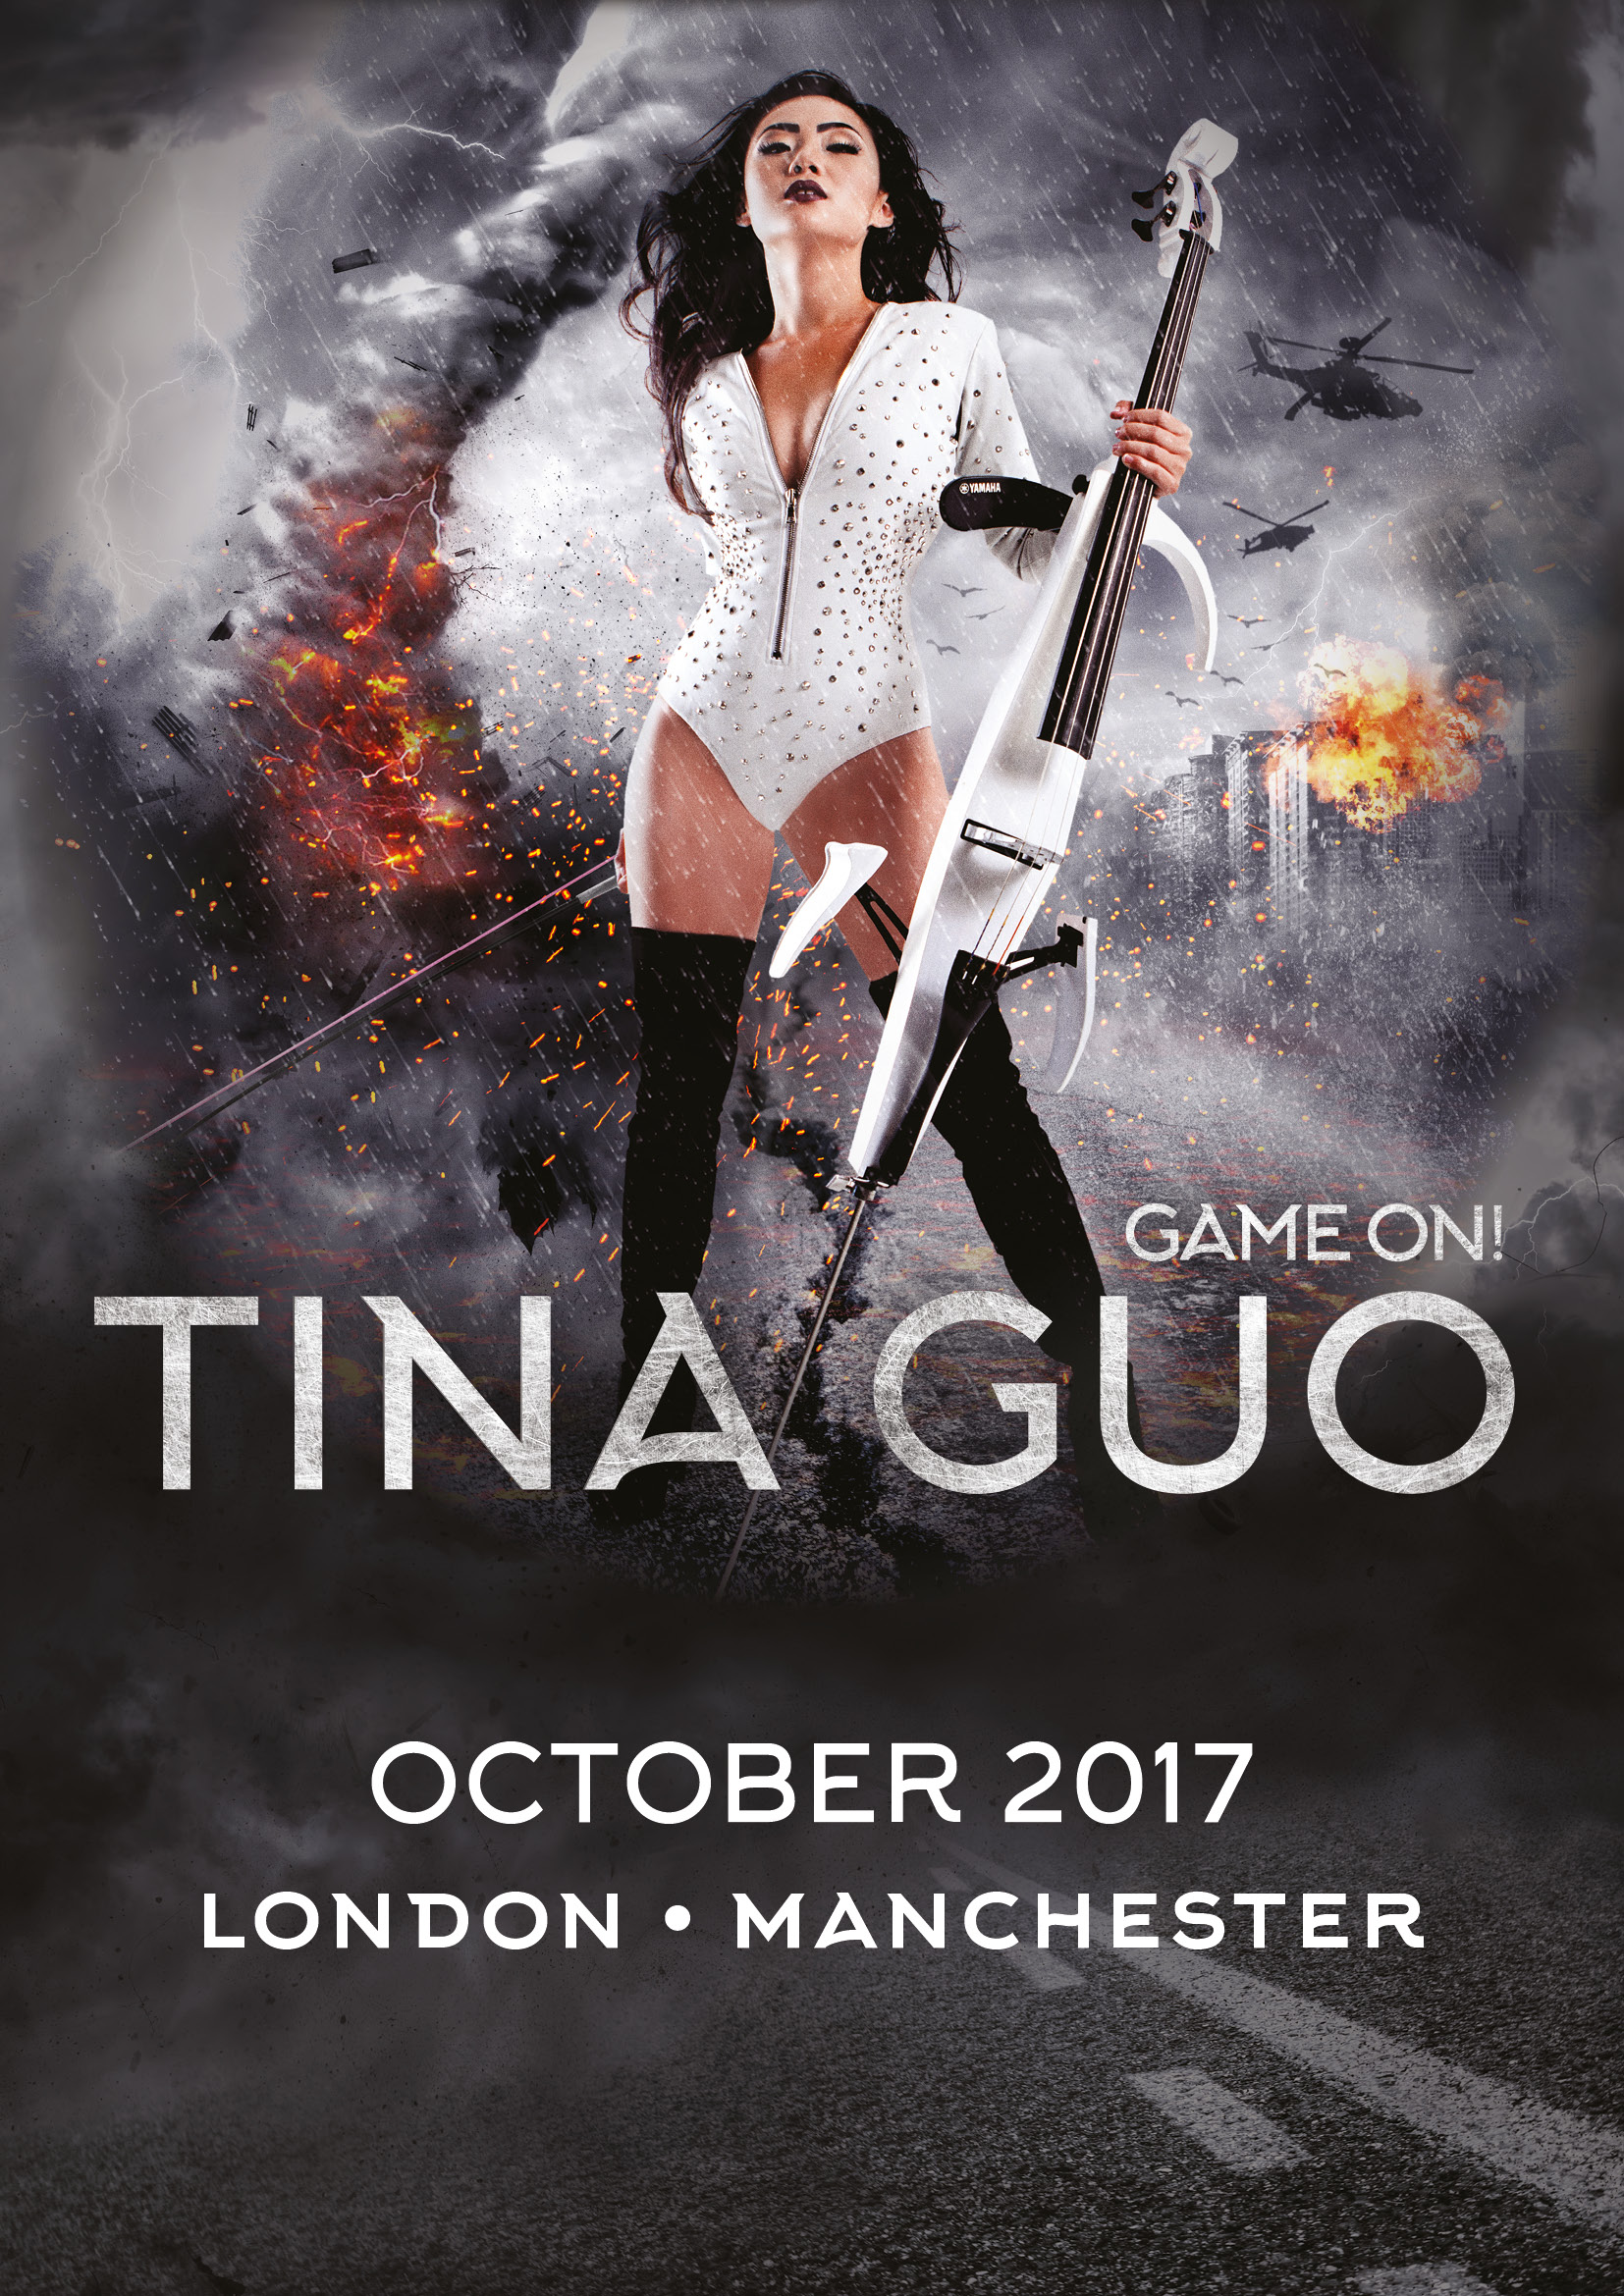 Tina Guo Game On! UK Tour 2017